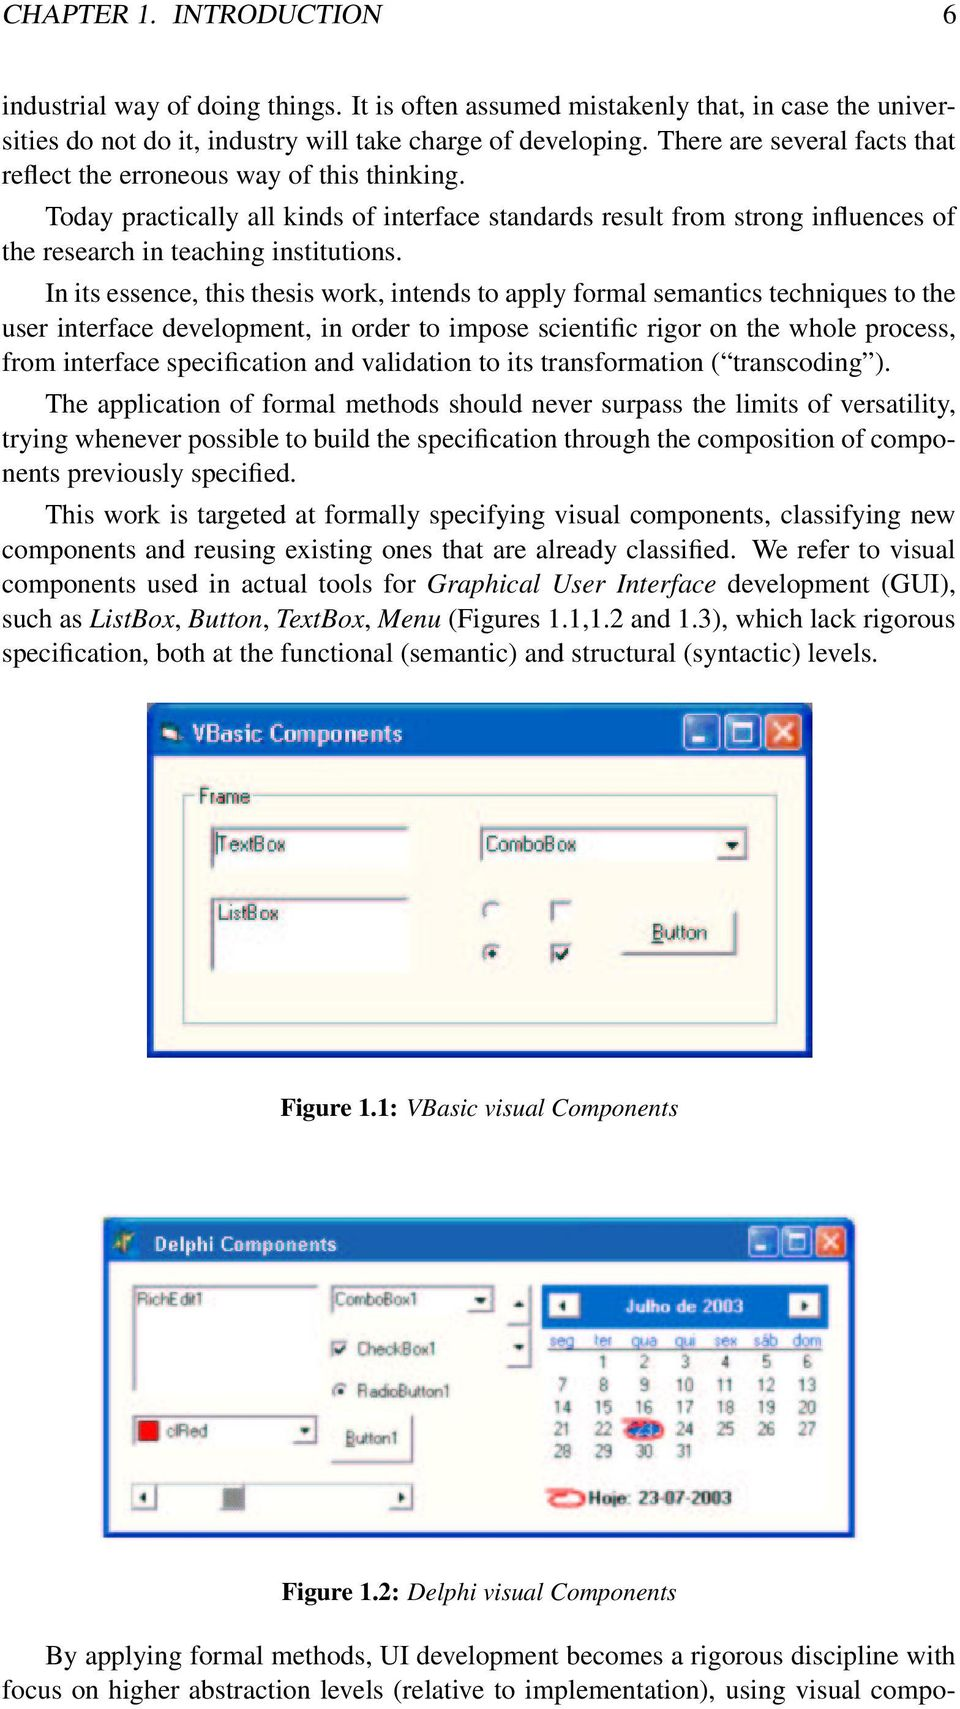 In its essence, this thesis work, intends to apply formal semantics techniques to the user interface development, in order to impose scientific rigor on the whole process, from interface